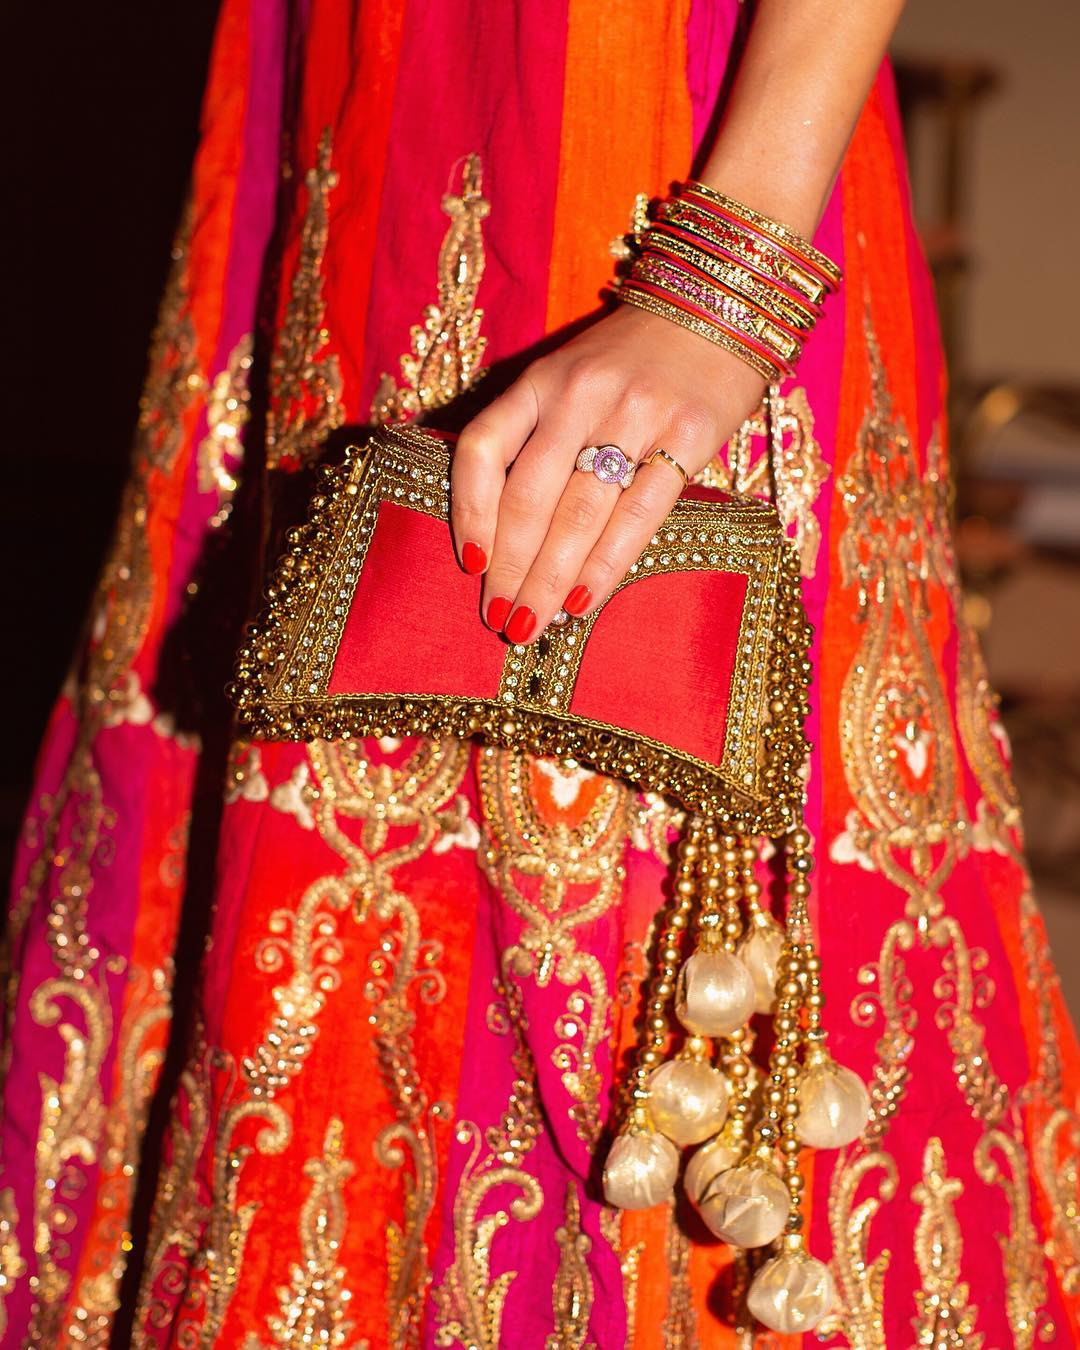 Drapers 30 under 30 founder Fash Mash Digital Strategist Brand Consultant Rosanna Falconer styles Mae Cassidy Fiery Red Zeenat Clutch Bag cross body silk gold handbag occasion wear party wear 2019 her Highness Rahman's Padmini Devi of Jaipu British Polo Day Gala dinner red carpet black tie Jaipur City Palace Traditional Indian National dress Lehenga Choli orange pink gold lime Pink city of Jaipur Rajasthani artisans gala Rosanna rose petals elephants horses camels city gates